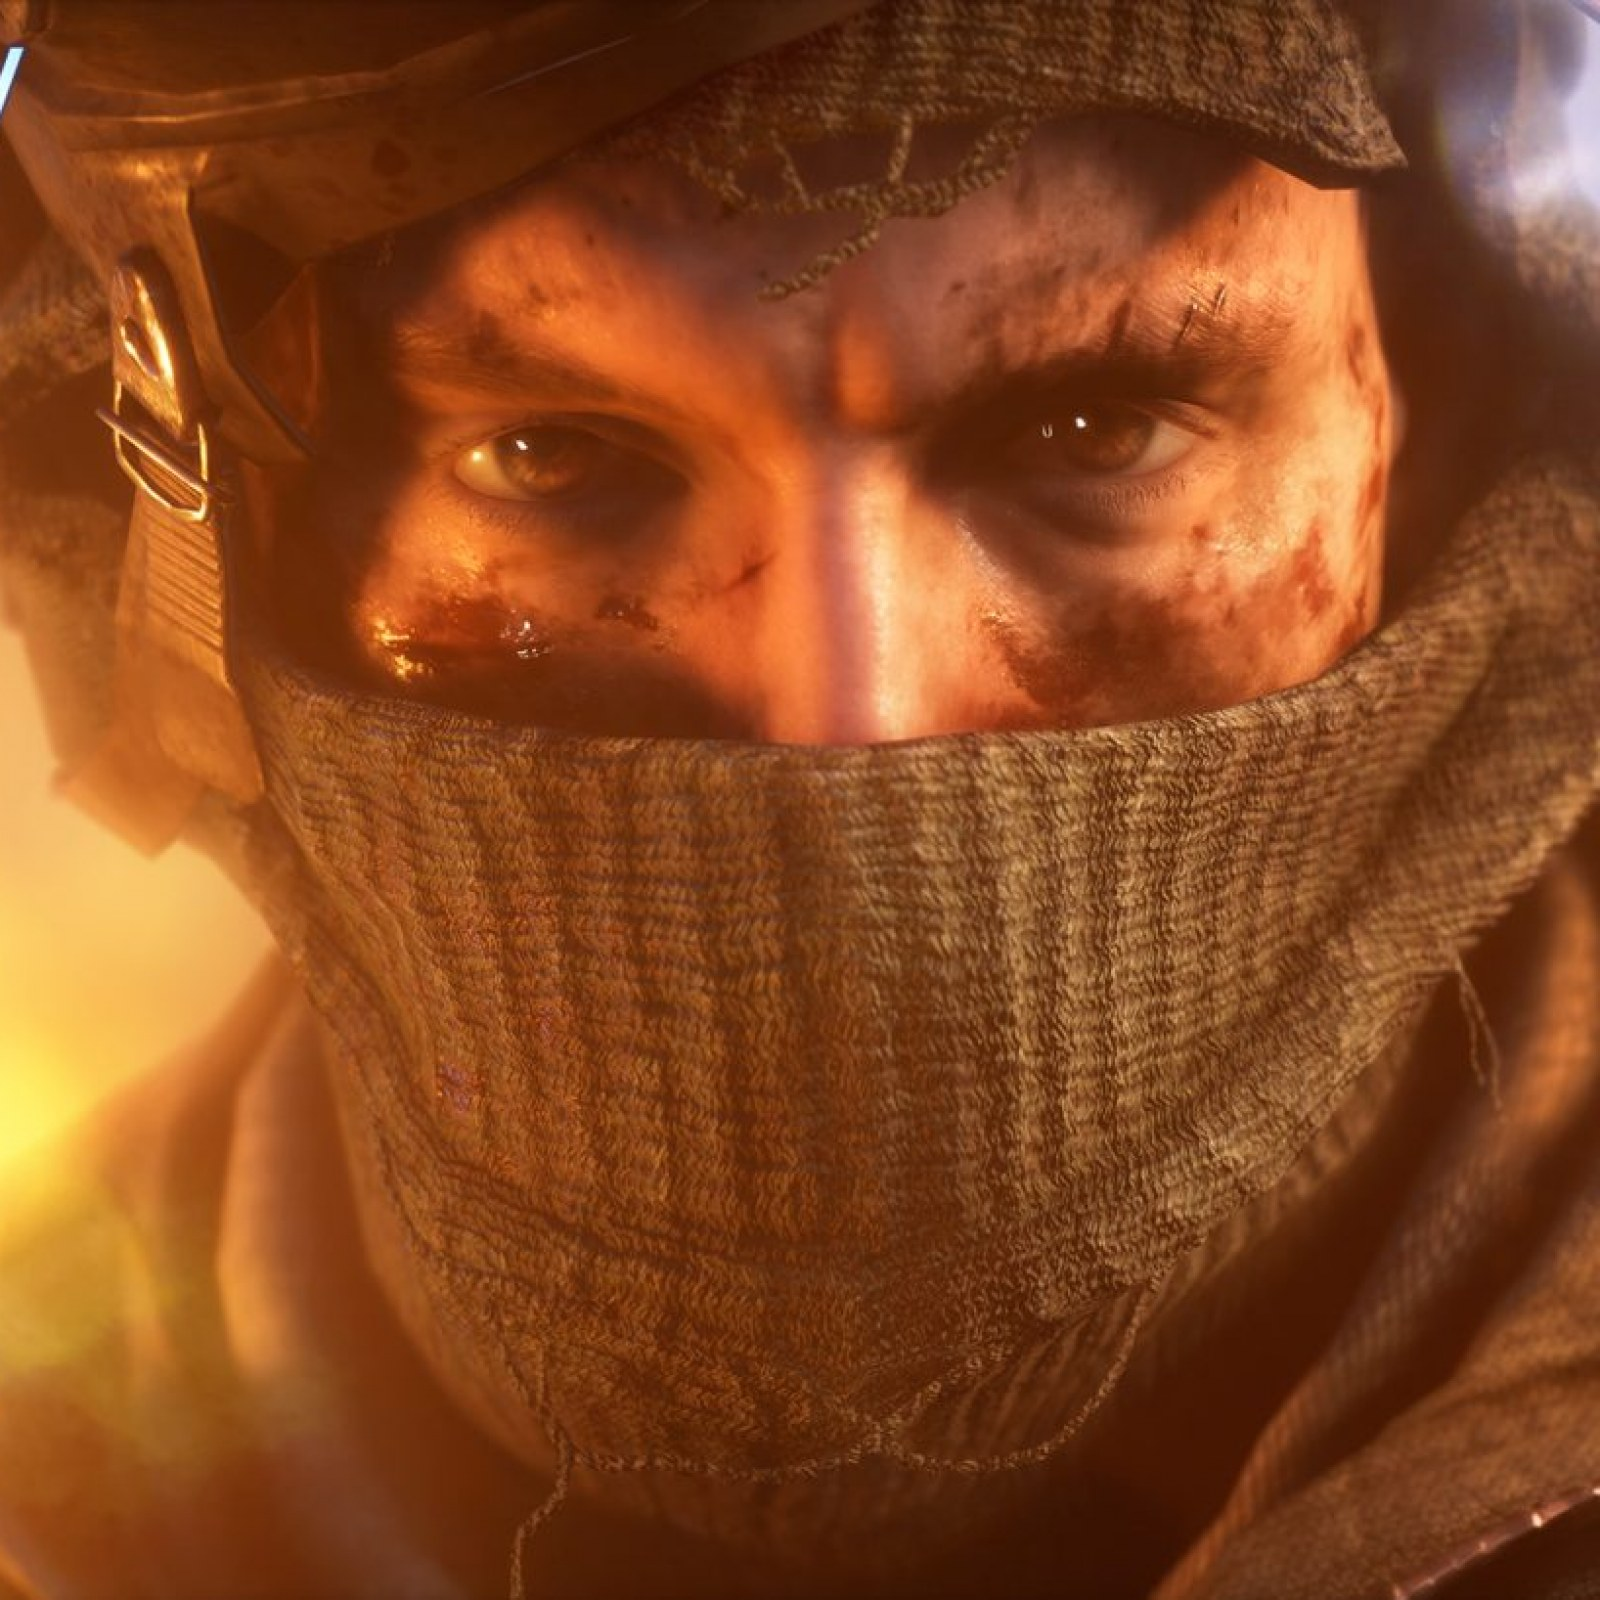 Battlefield 5' Update 1 21 Fixes Invisible Soldiers - Patch Notes